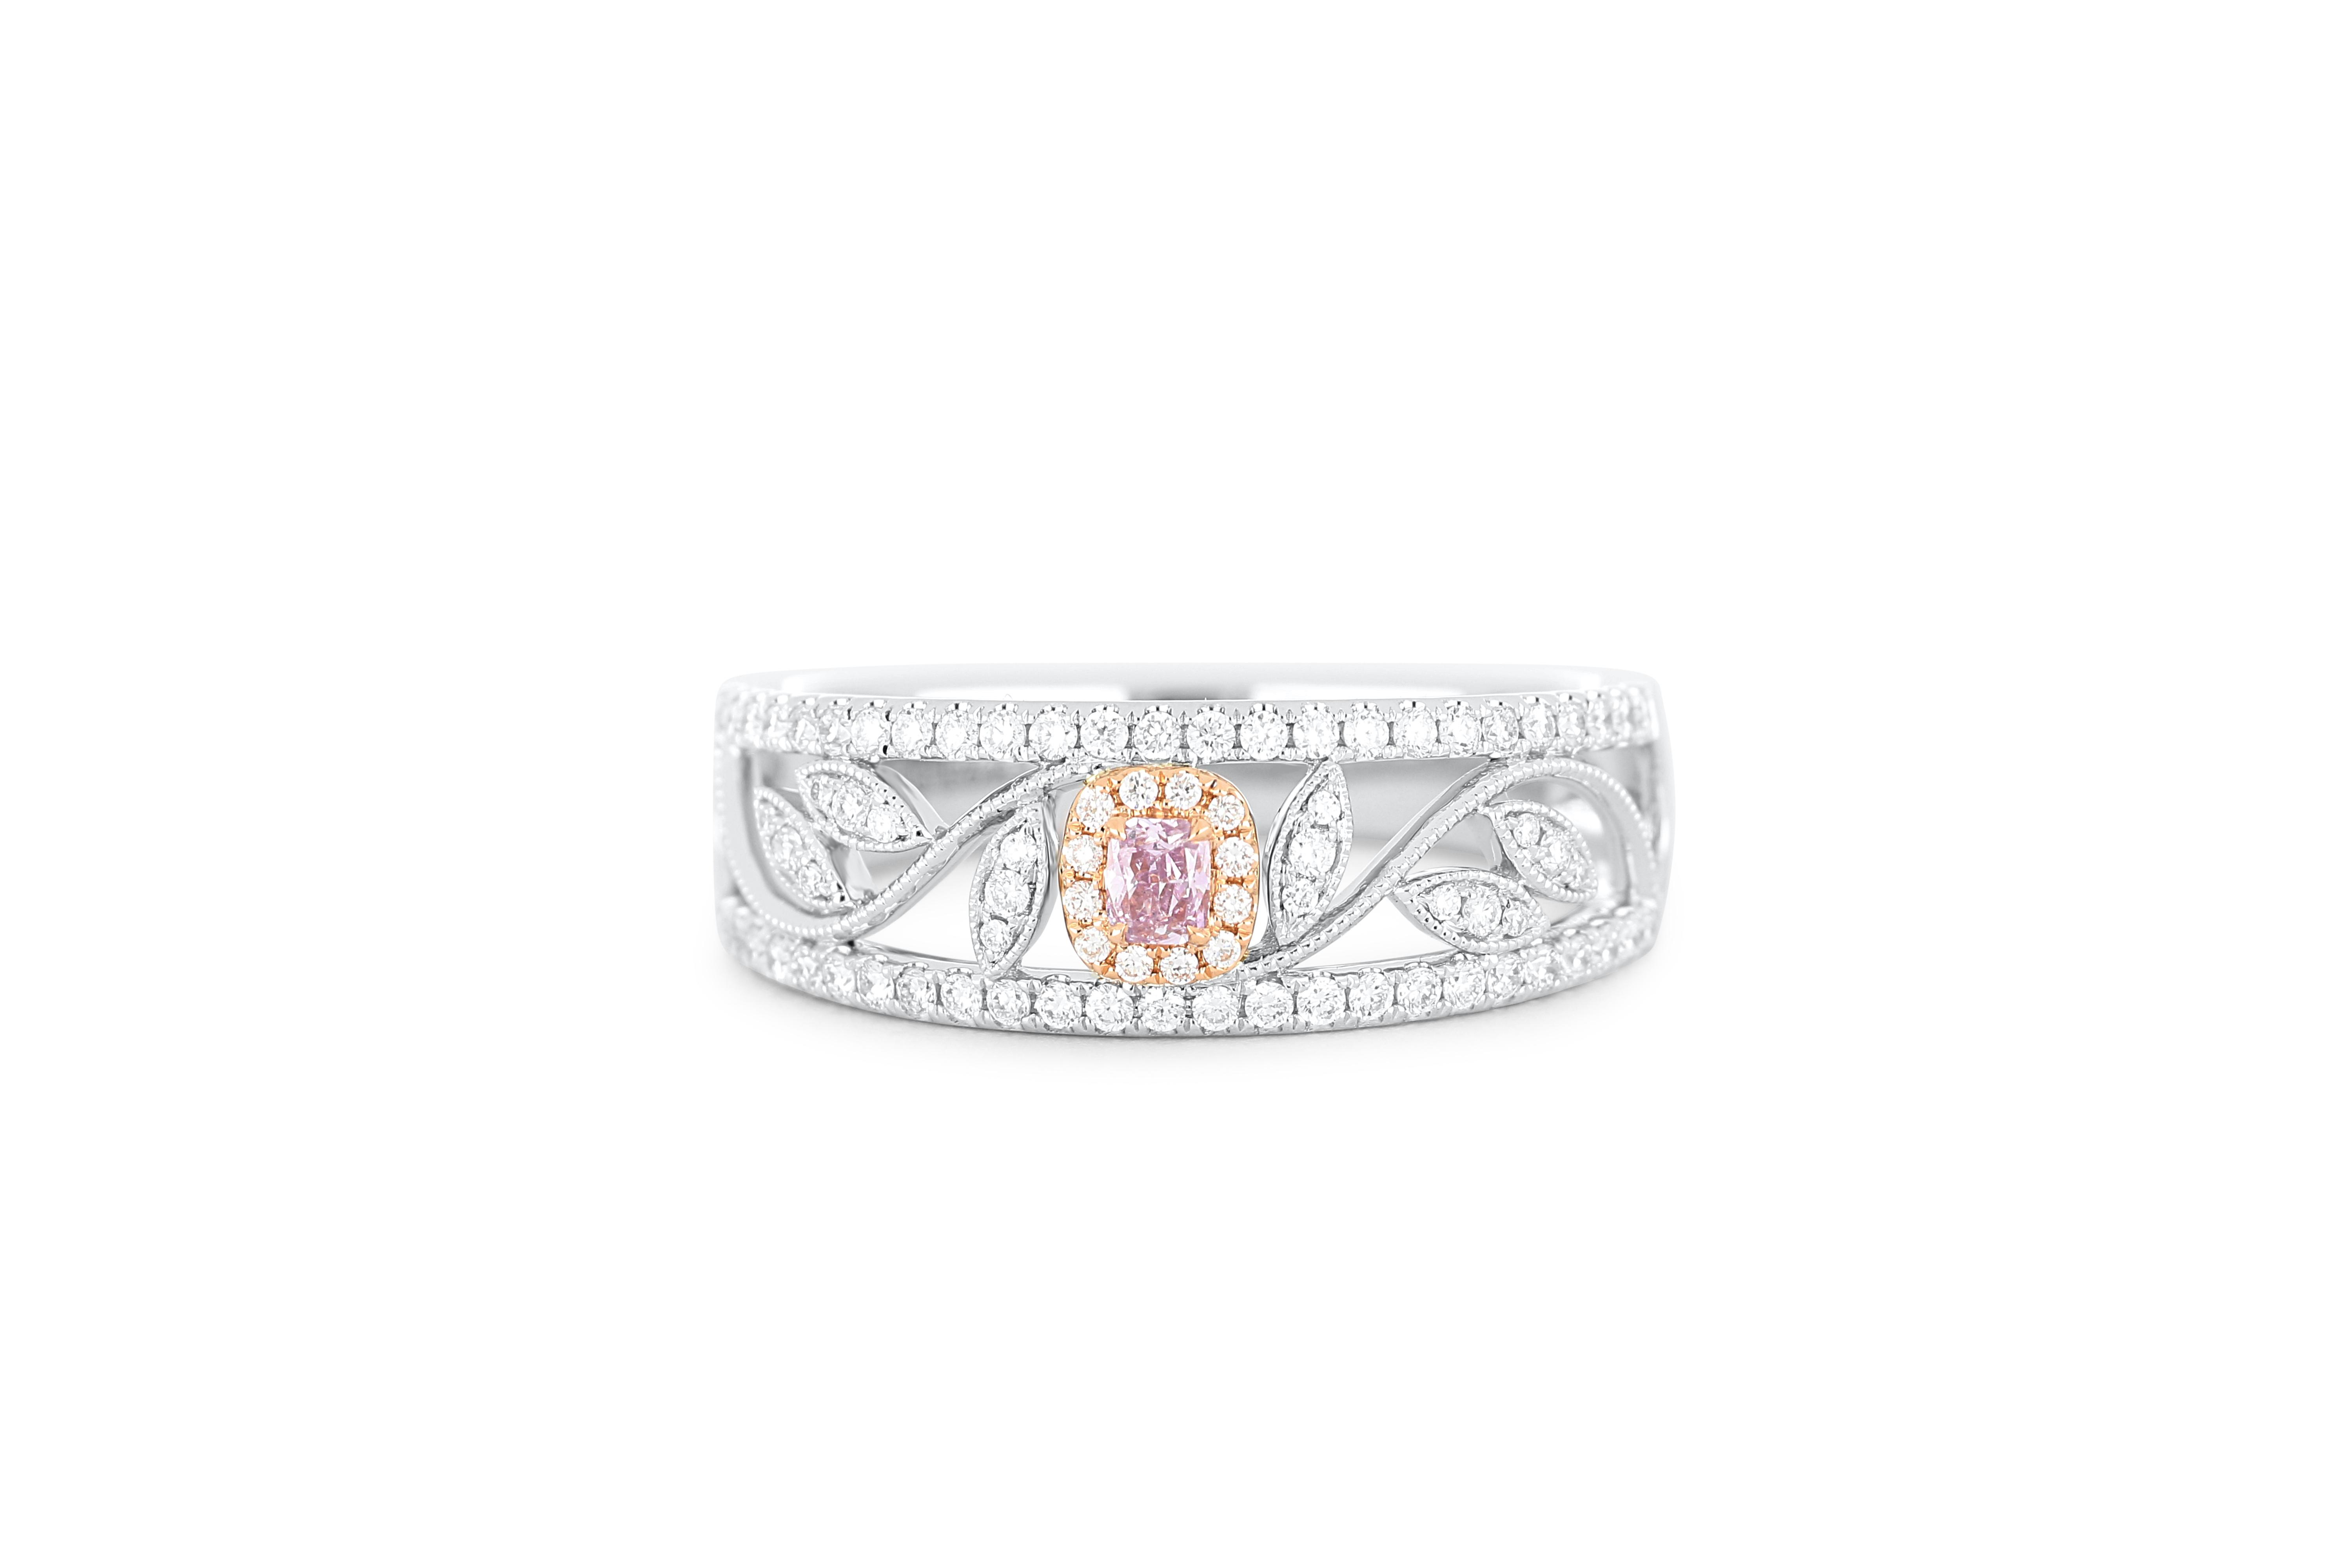 18k gold ring set with a centre FPP 0.057ct cushion cut natural diamond